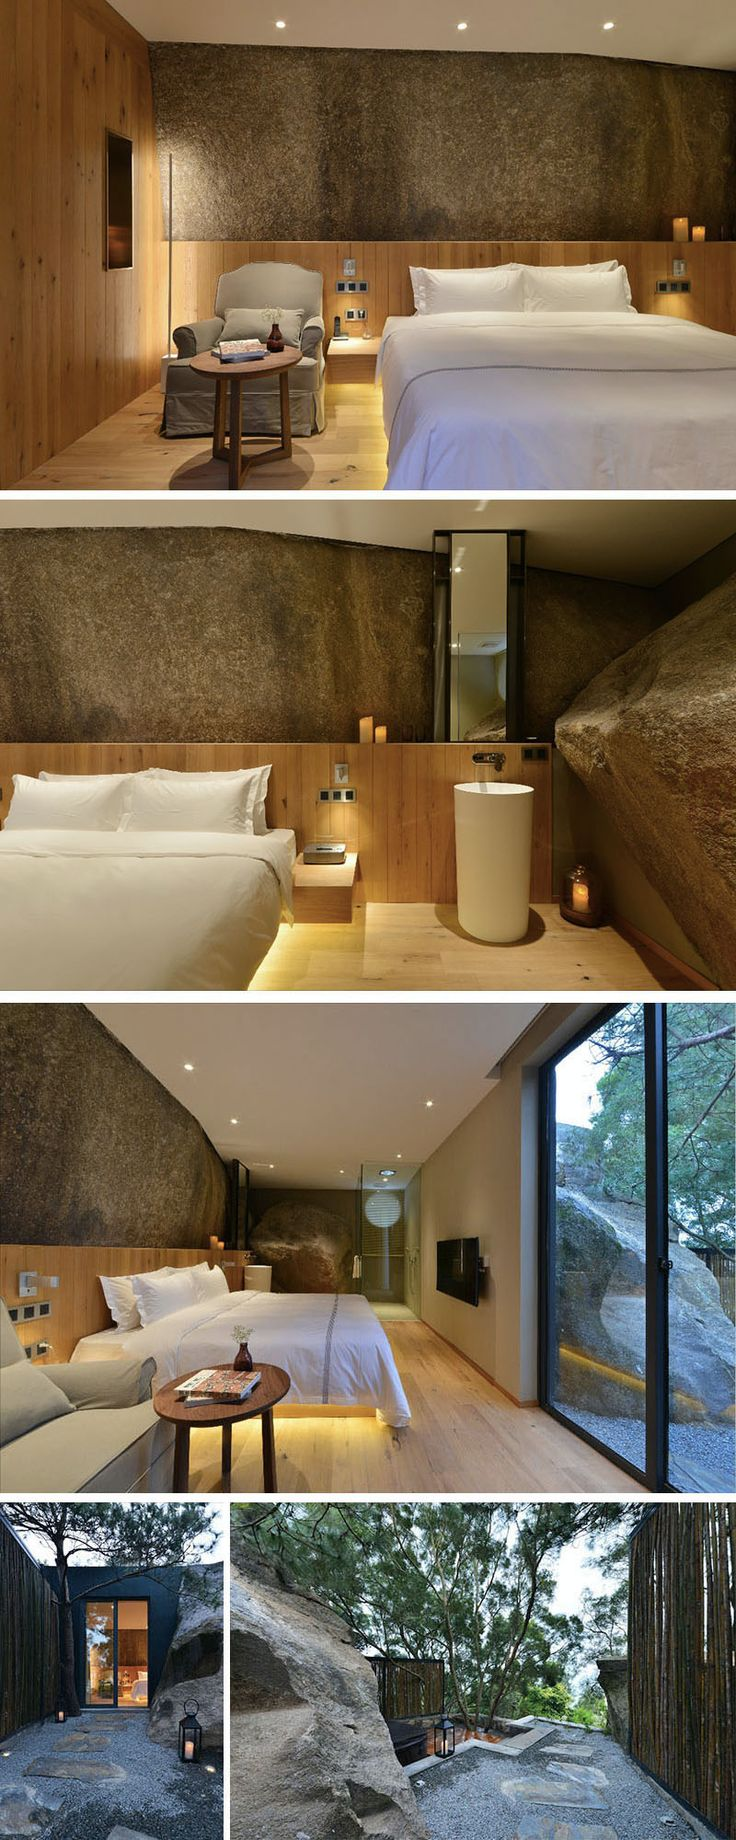 In this hotel room in China, a large rock wall has been left to create a feature wall, and in the bathroom, a large boulder has been left in the space. Outside, there's a small path that leads to a deck and private spa.